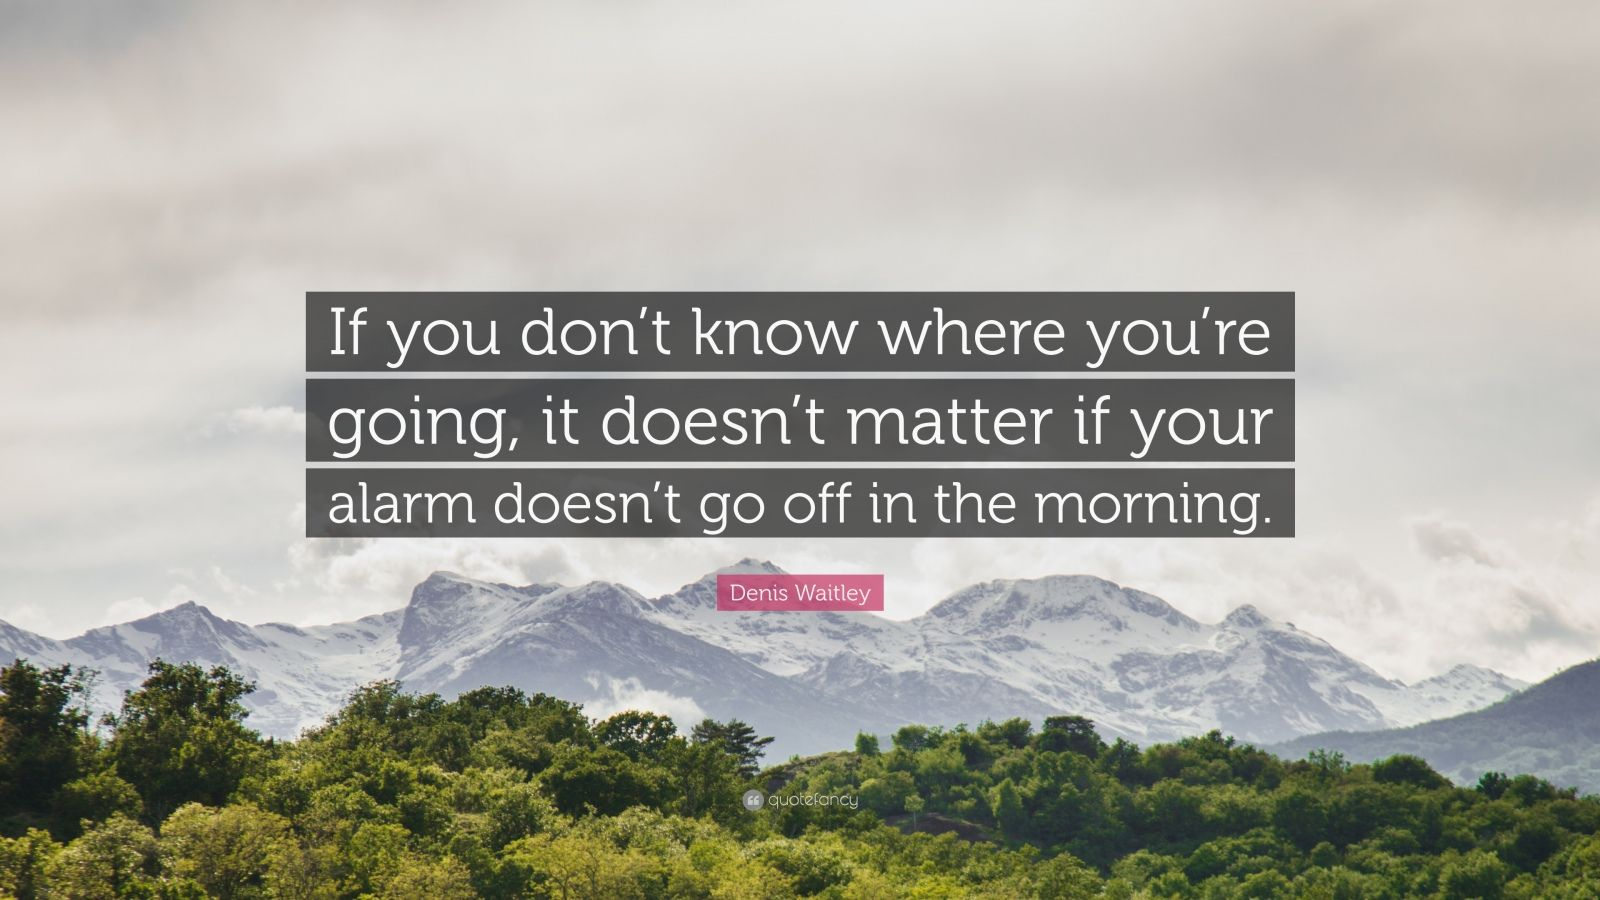 """Denis Waitley Quote: """"If you don't know where you're going, it doesn't matter if your alarm doesn't go off in the morning."""""""